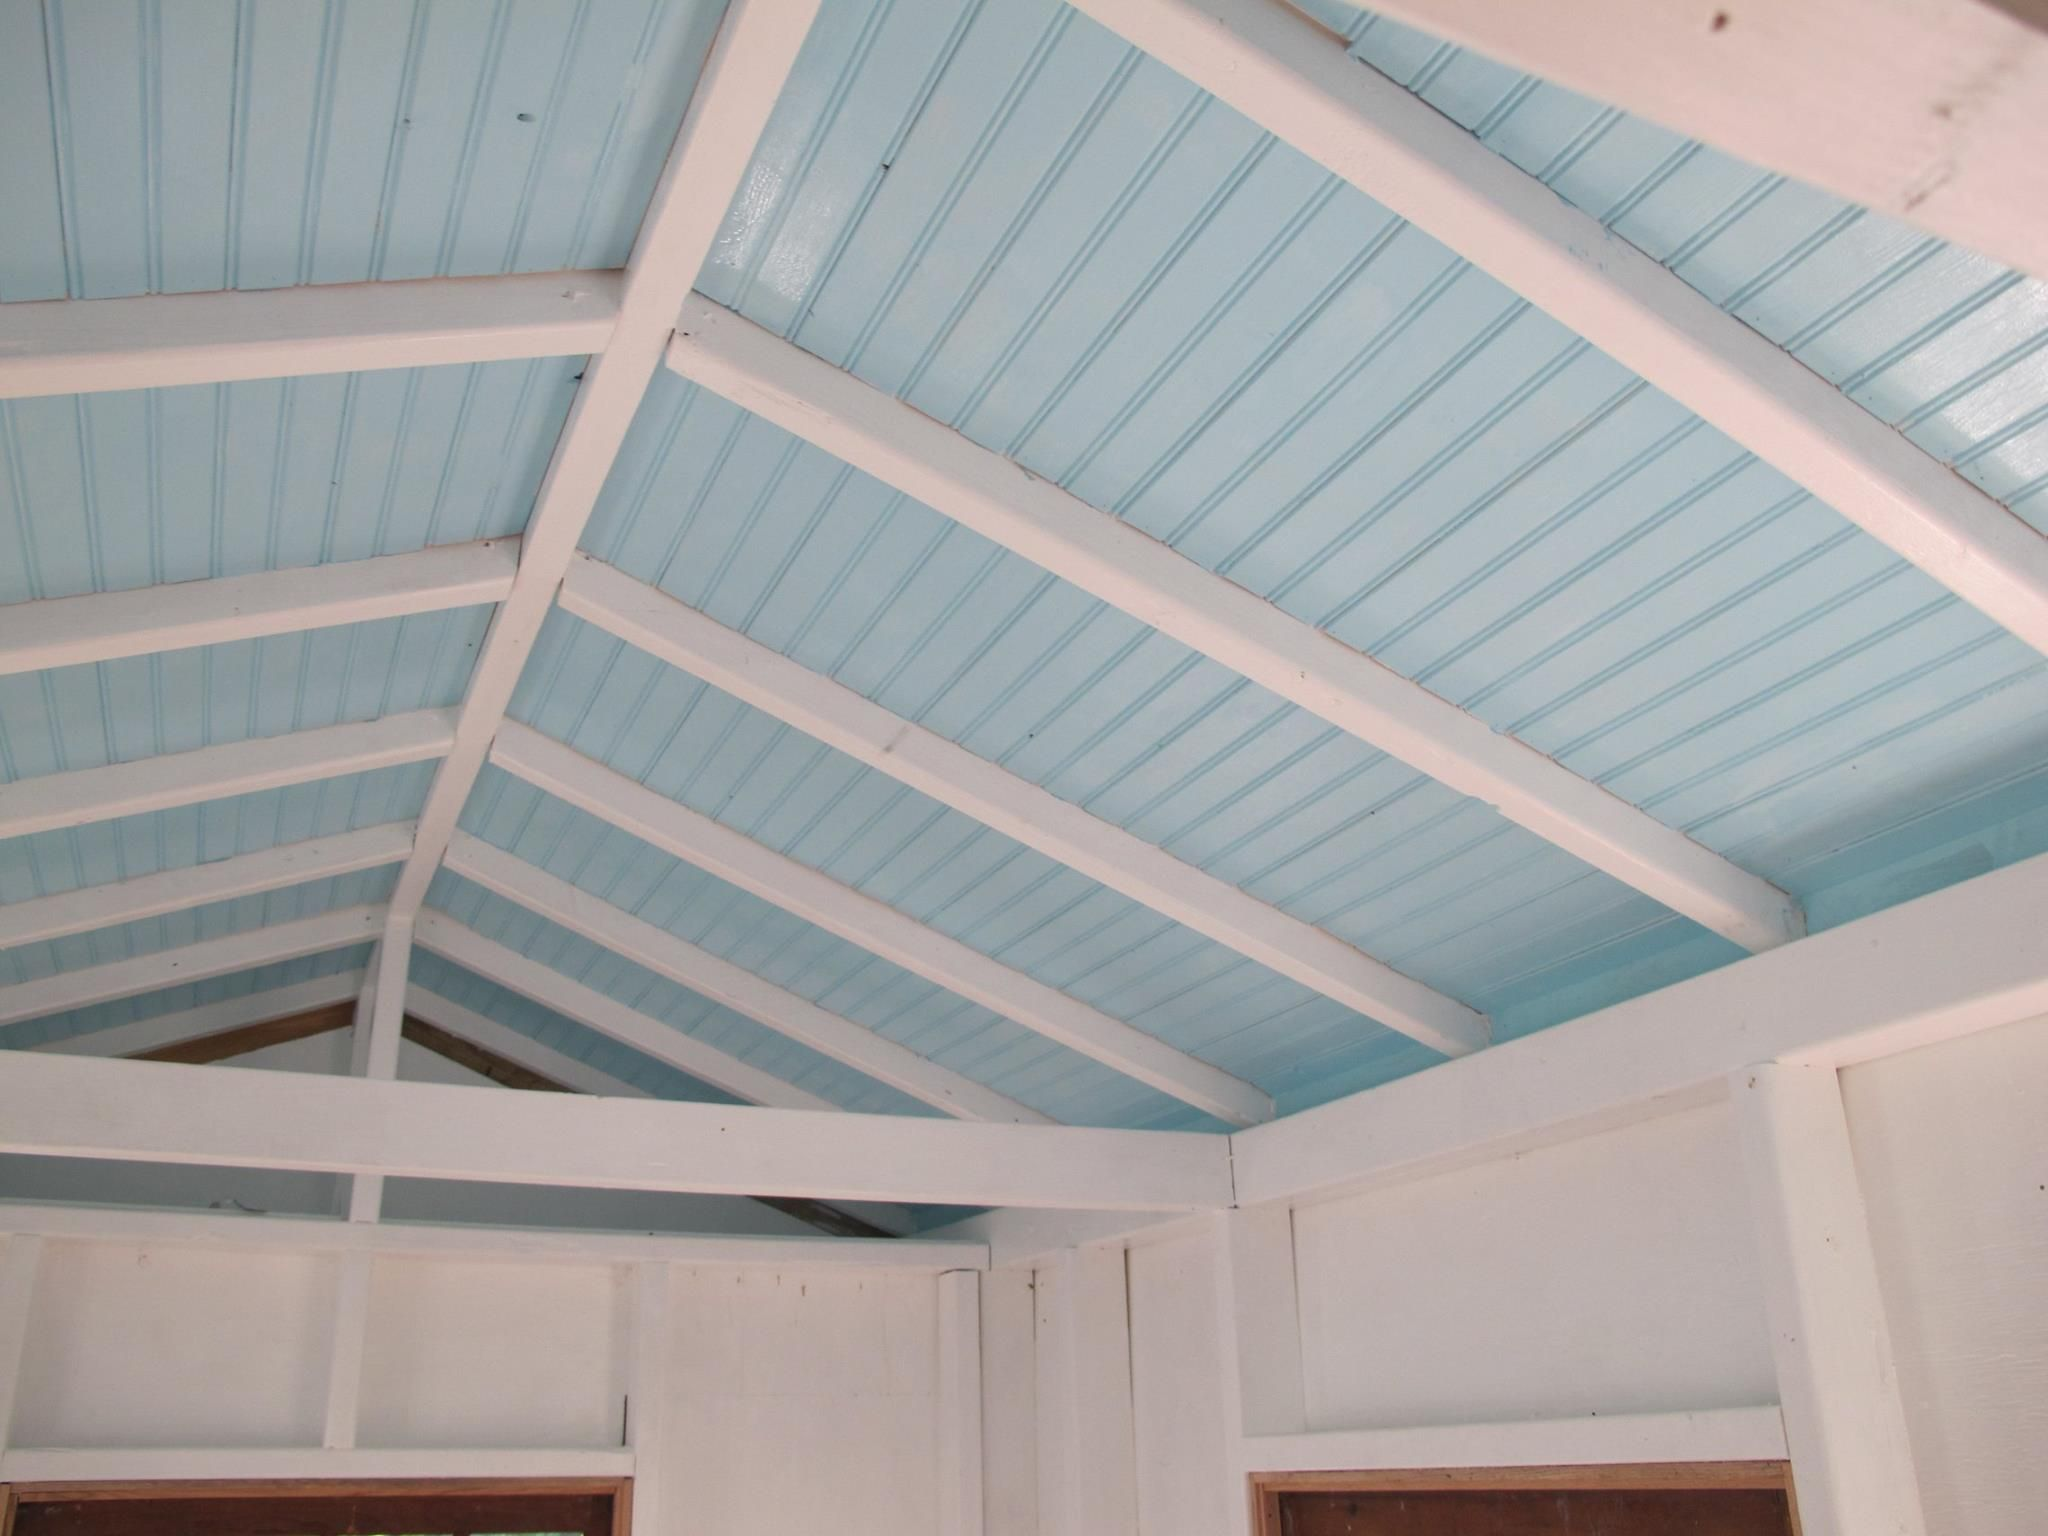 Ply Bead Ceiling The Potting Shed Sawdust Woodchips Wood Plank Ceiling Ceiling Tiles Plank Ceiling